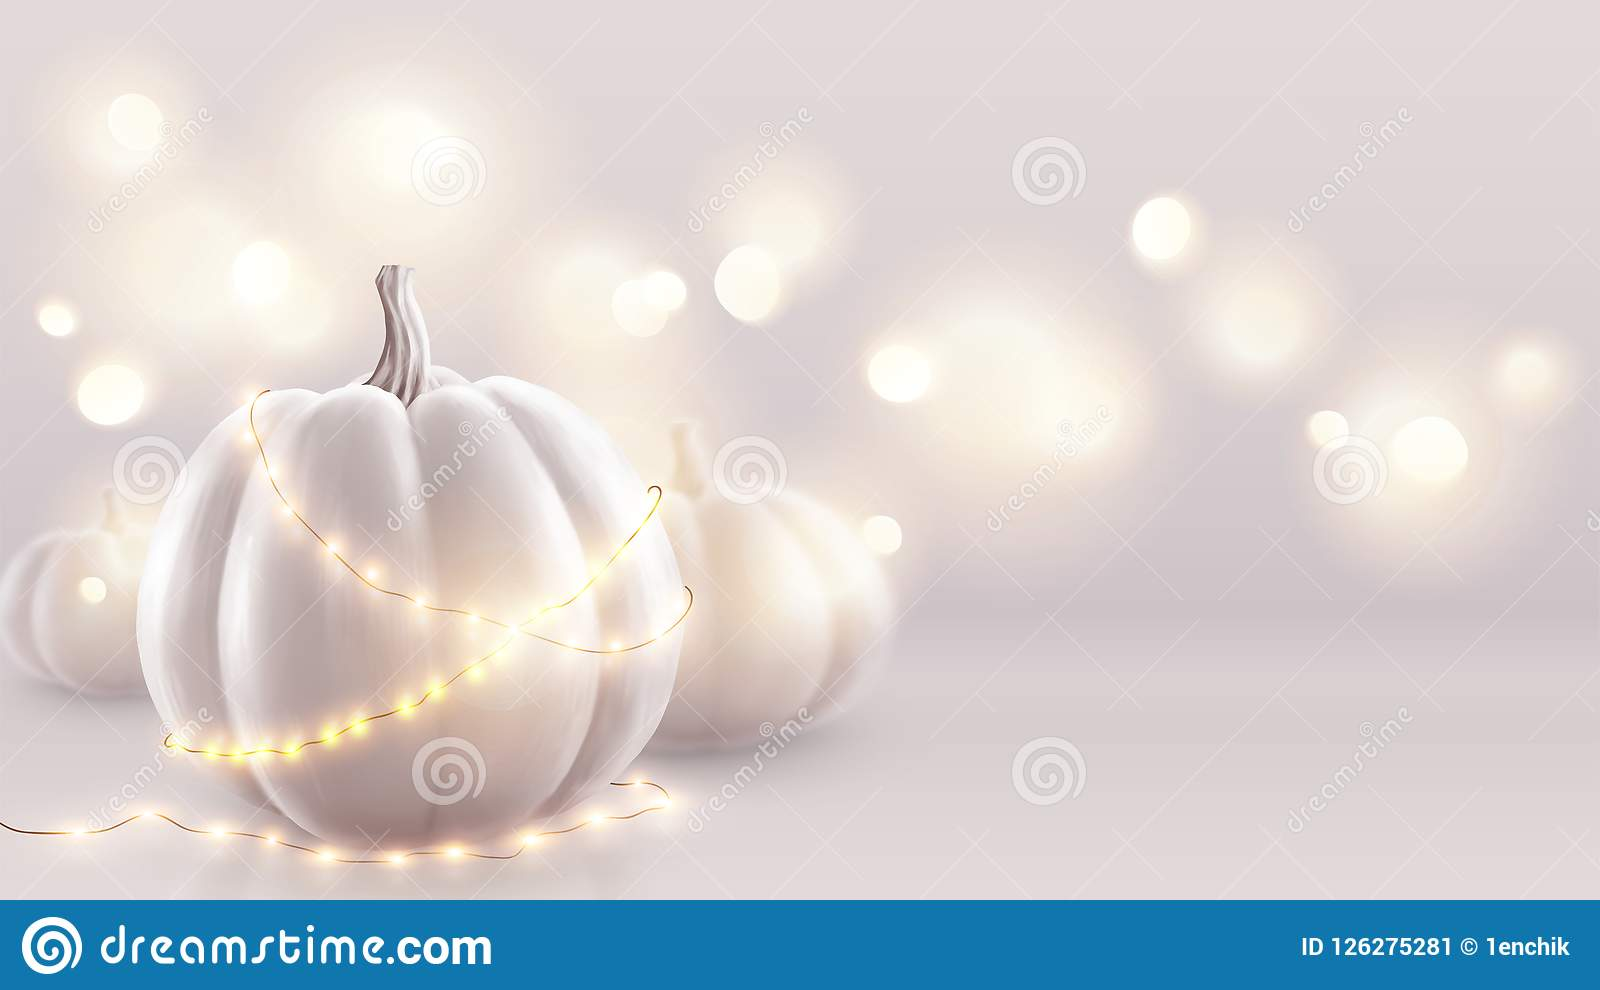 White Realistic Pumpkins And Warm Lights Vector Greeting Card